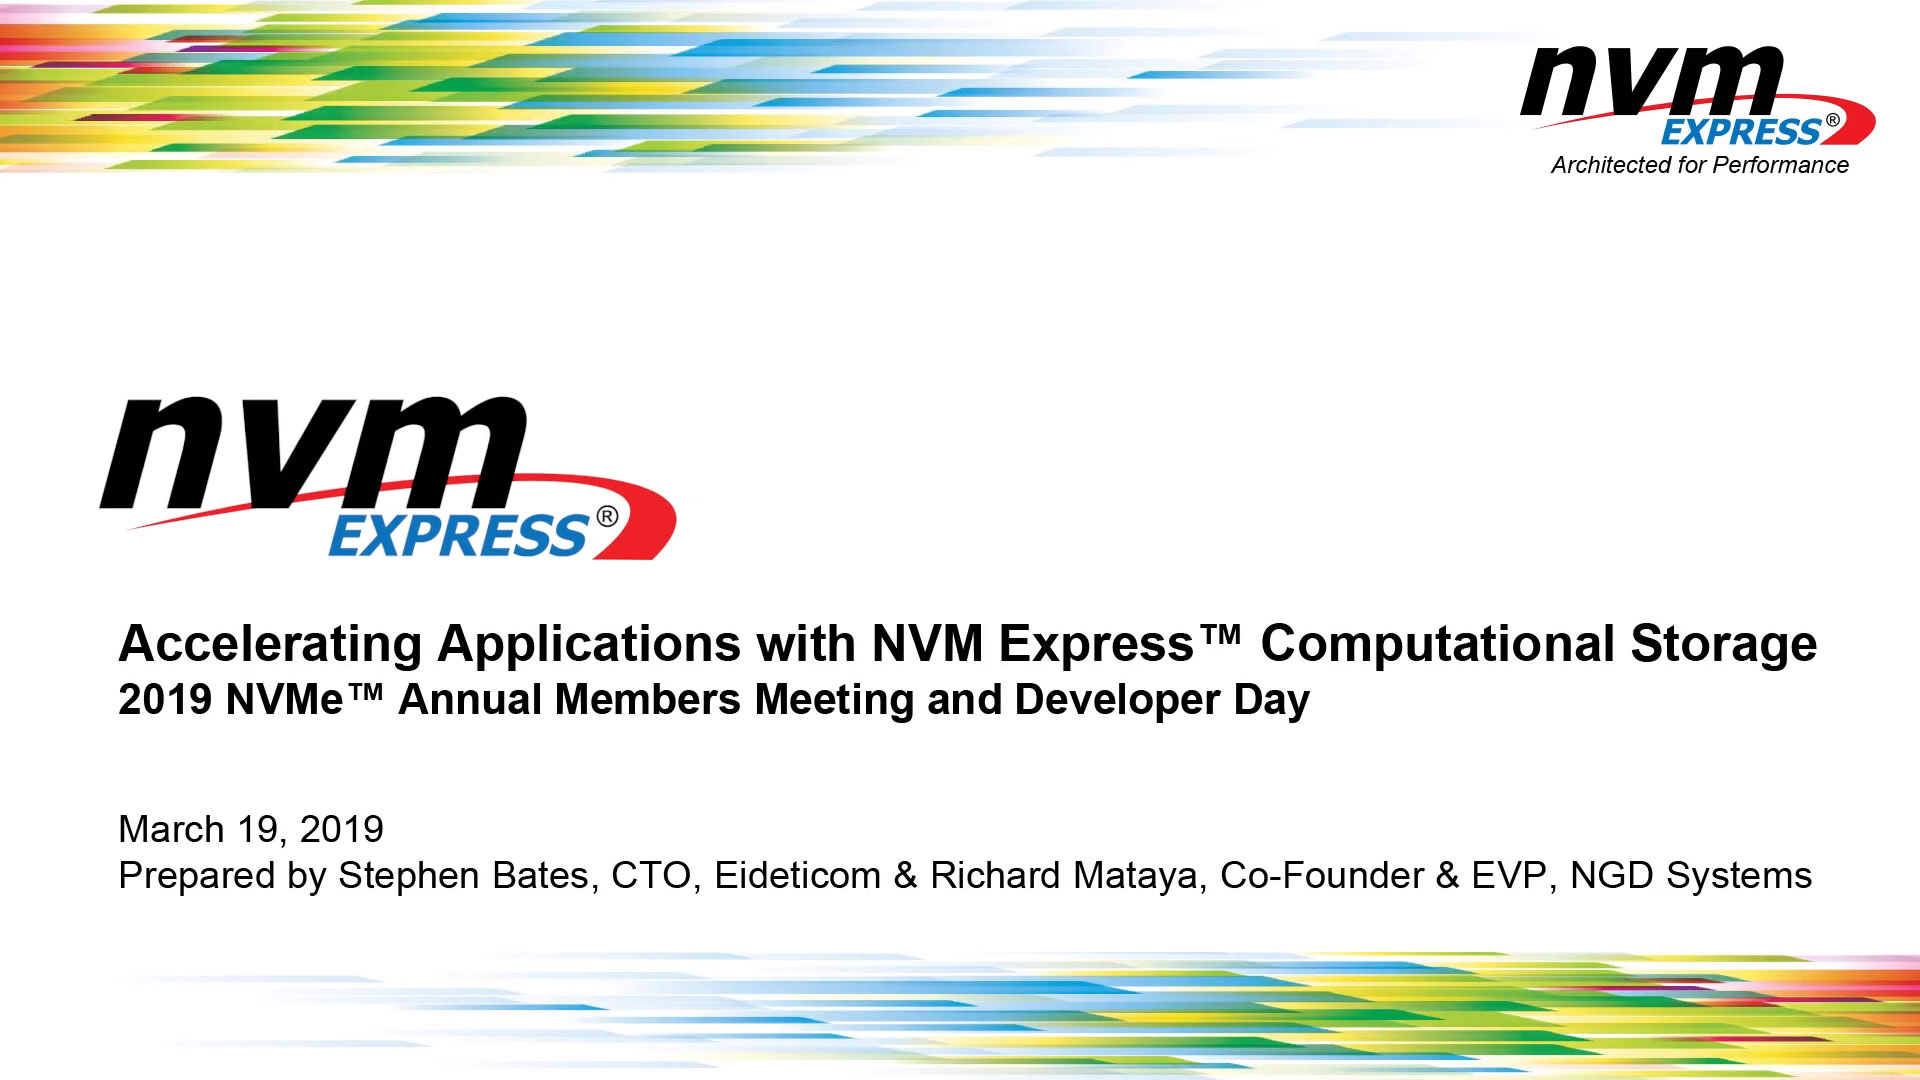 Accelerating Applications with NVM Express™ Computational Storage